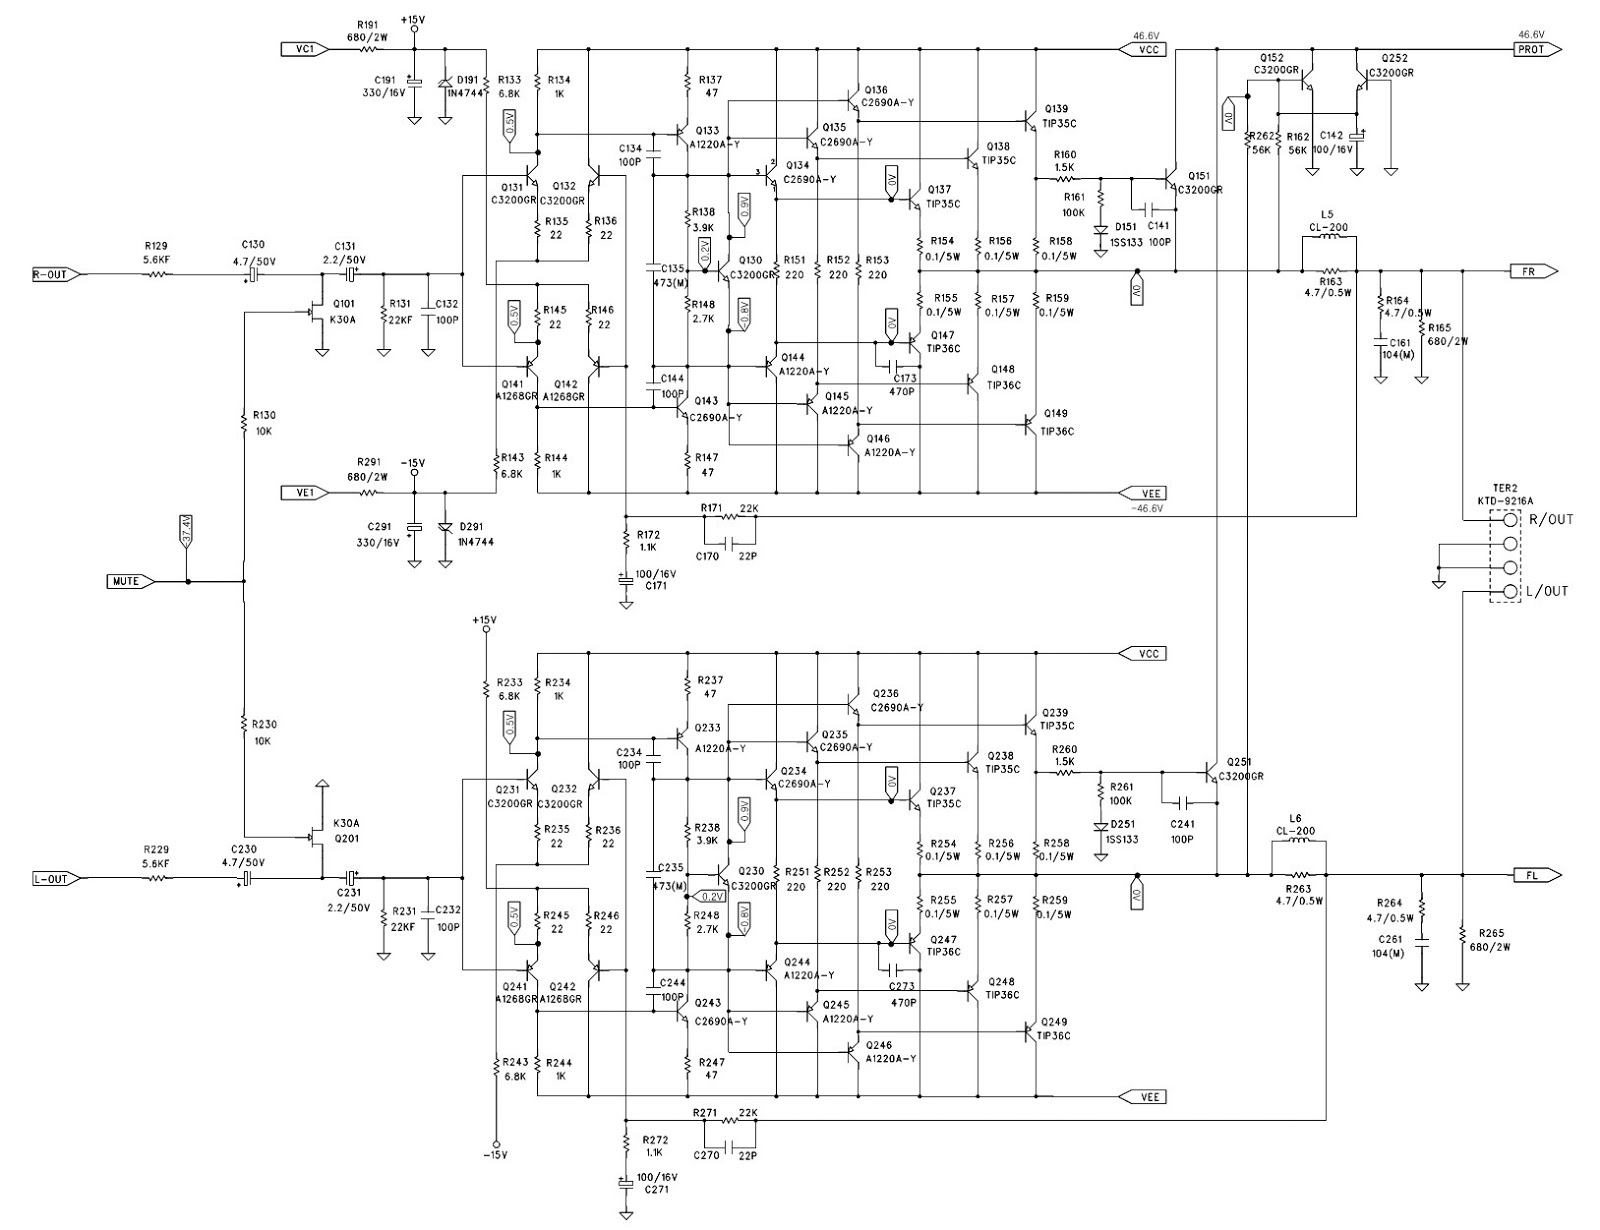 jbl l100t3 wiring diagram jbl px 600.2 – 2 channel car amplifier – mosfet output – circuit diagram – wiring diagram ...